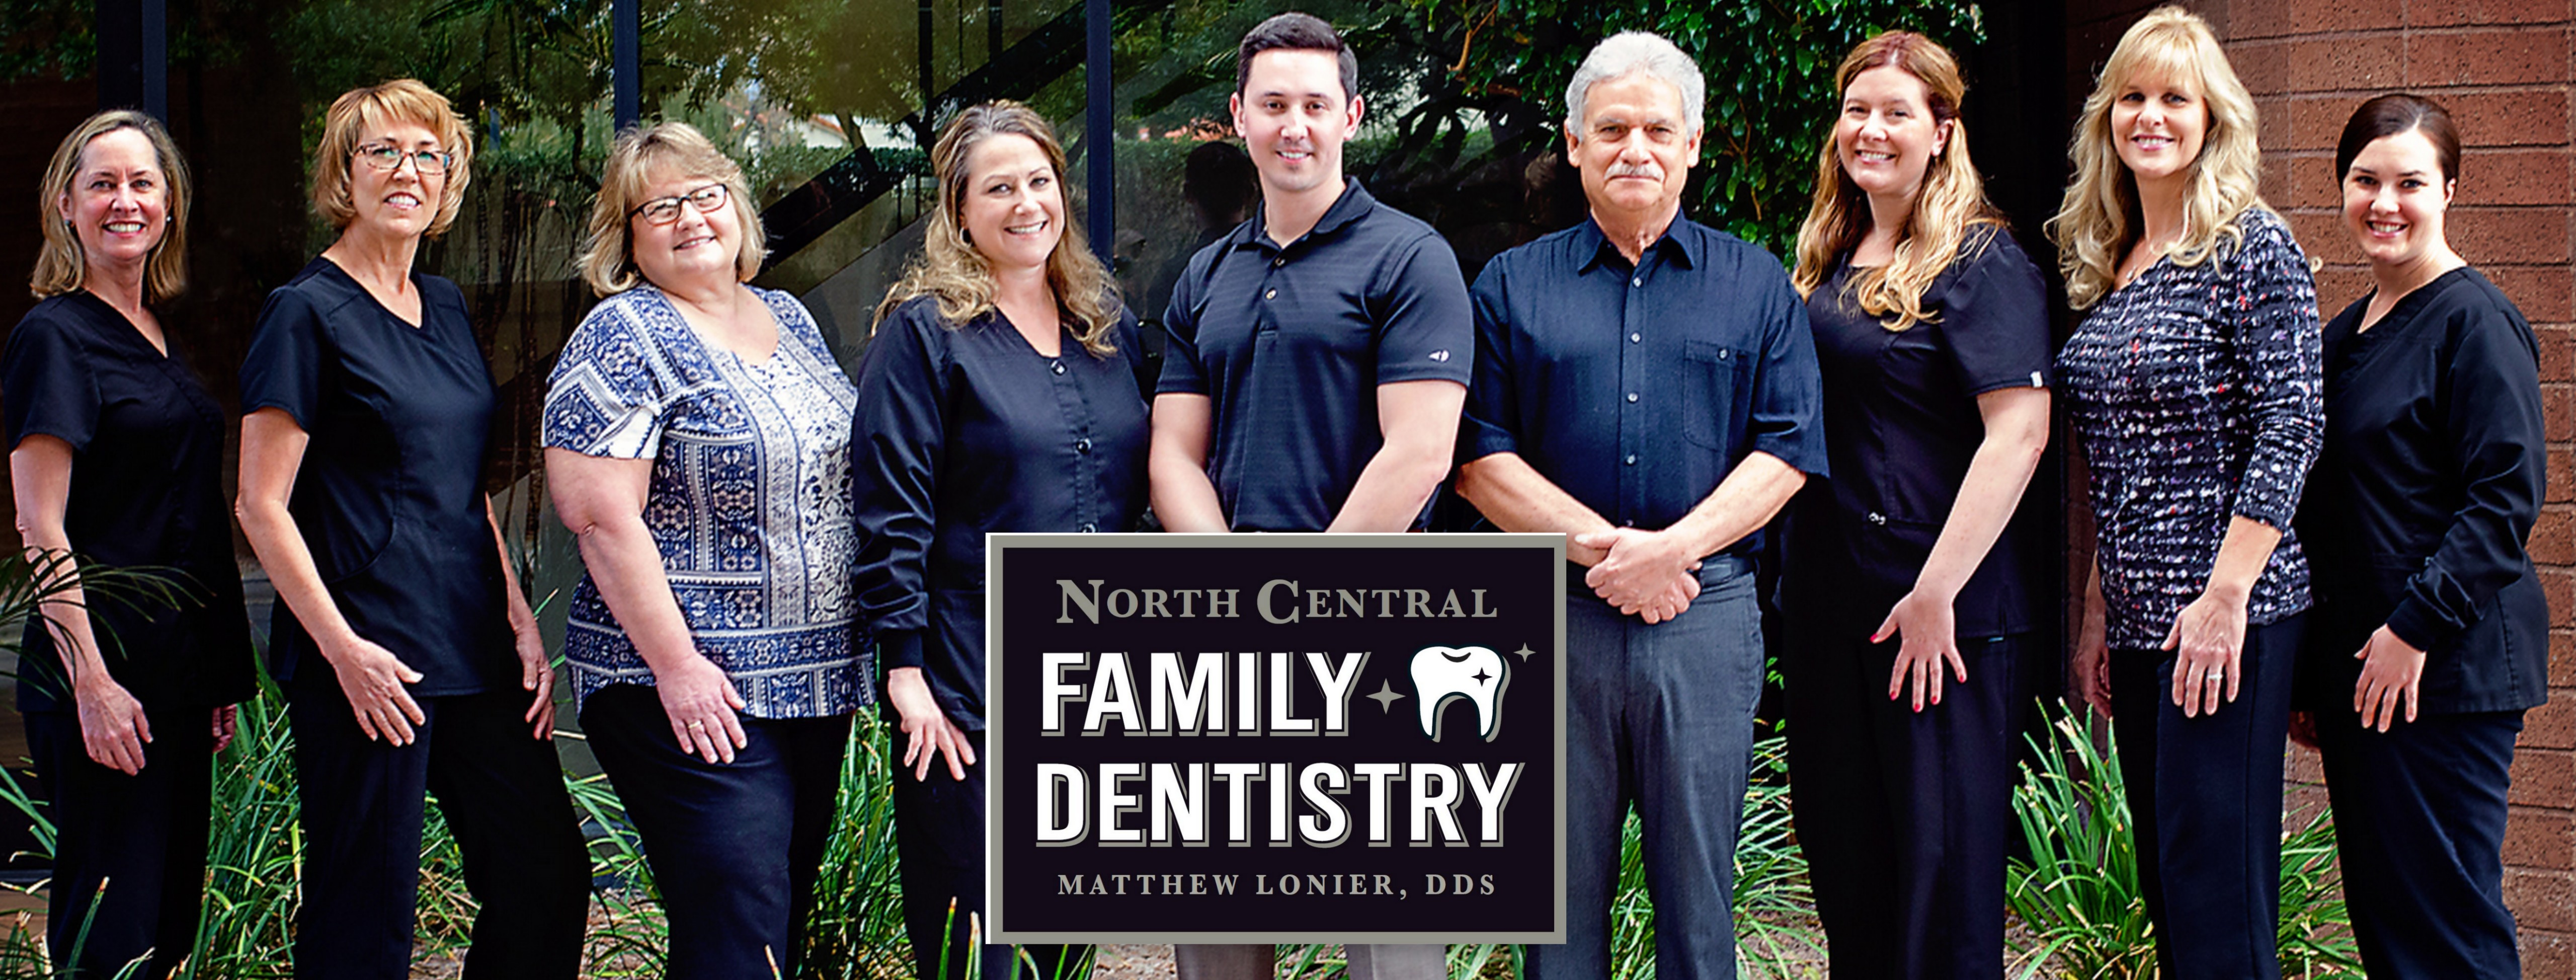 North Central Family Dentistry | General Dentistry at 5225 N Central Ave - Phoenix AZ